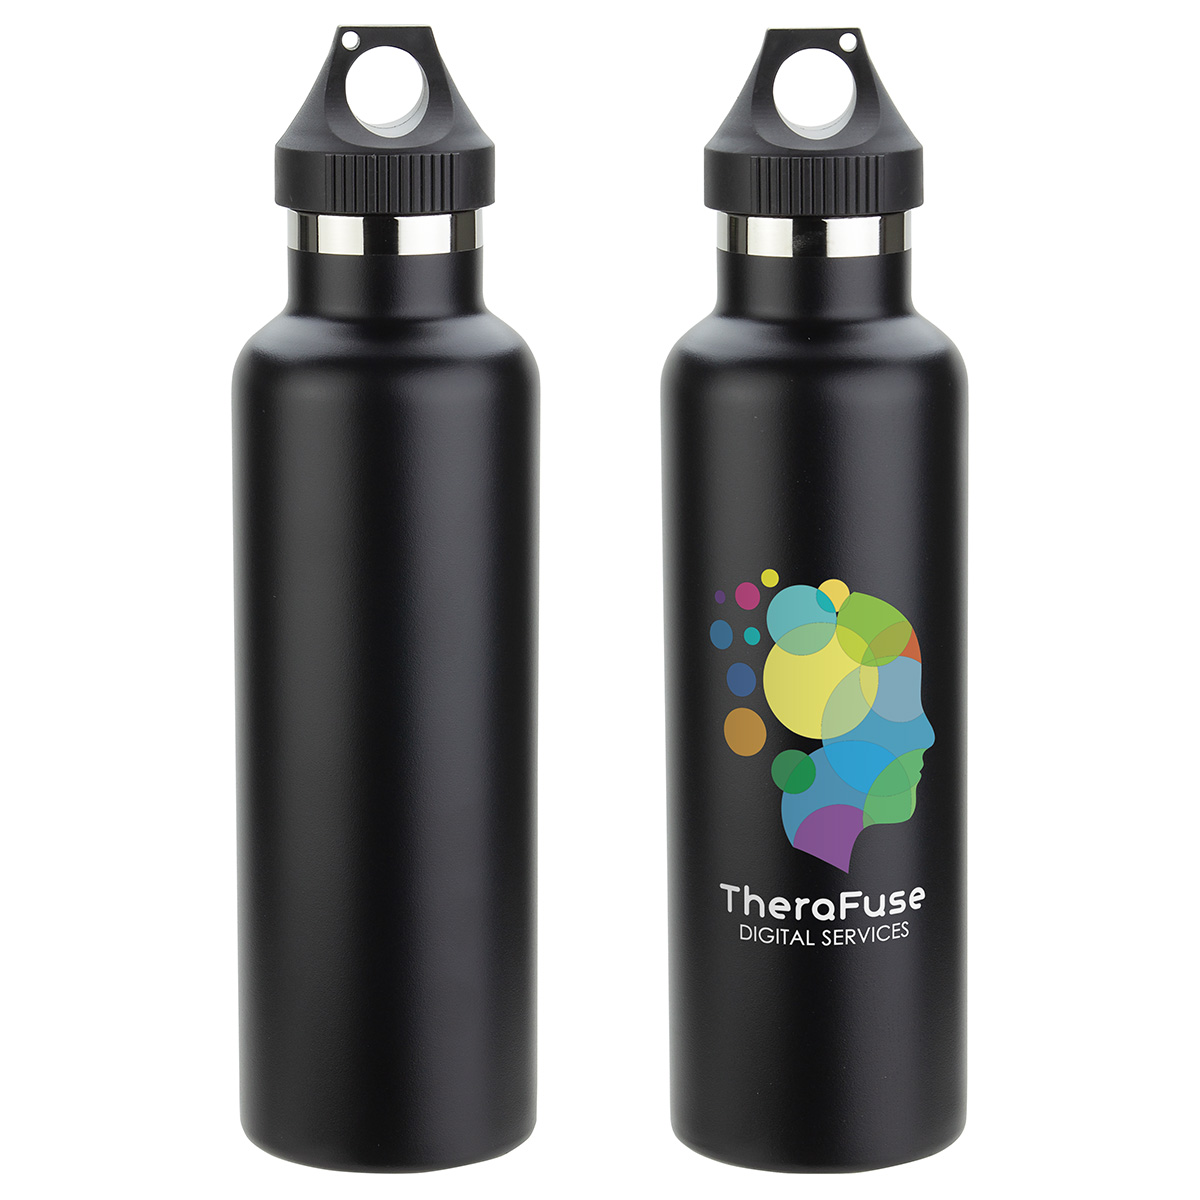 Peak 25 oz Vacuum Insulated Stainless Steel Bottle, DBT-PK17, 1 Colour Imprint